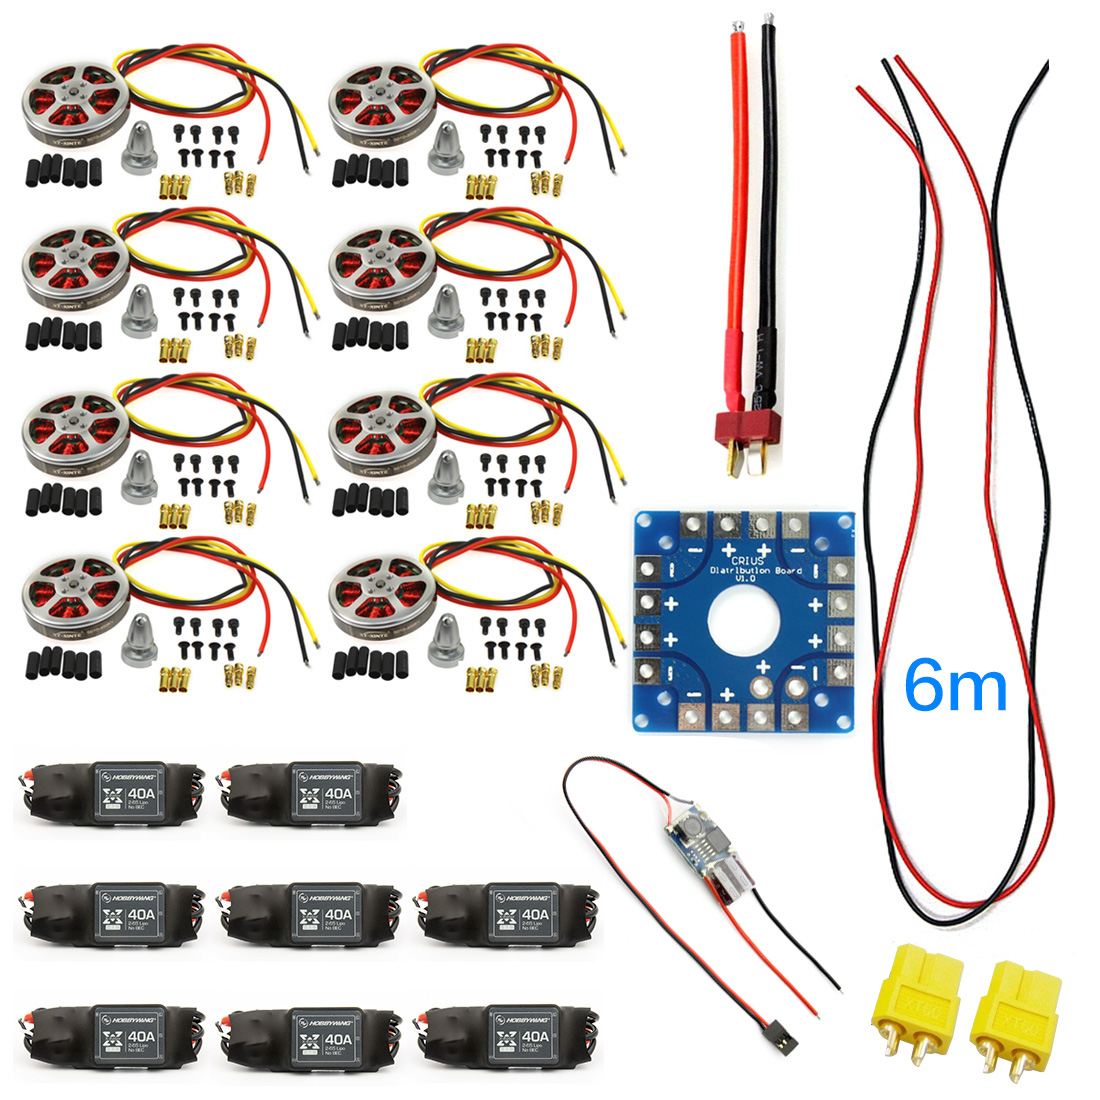 F04997-F JMT Assembled Kit : 40A ESC Controller 350KV Motor Connection Board Wire for 8-axle Drone Multi Rotor Hexacopter zy 25 diy solderless assembled 25 hole mini bread board test board multi colored 1 set